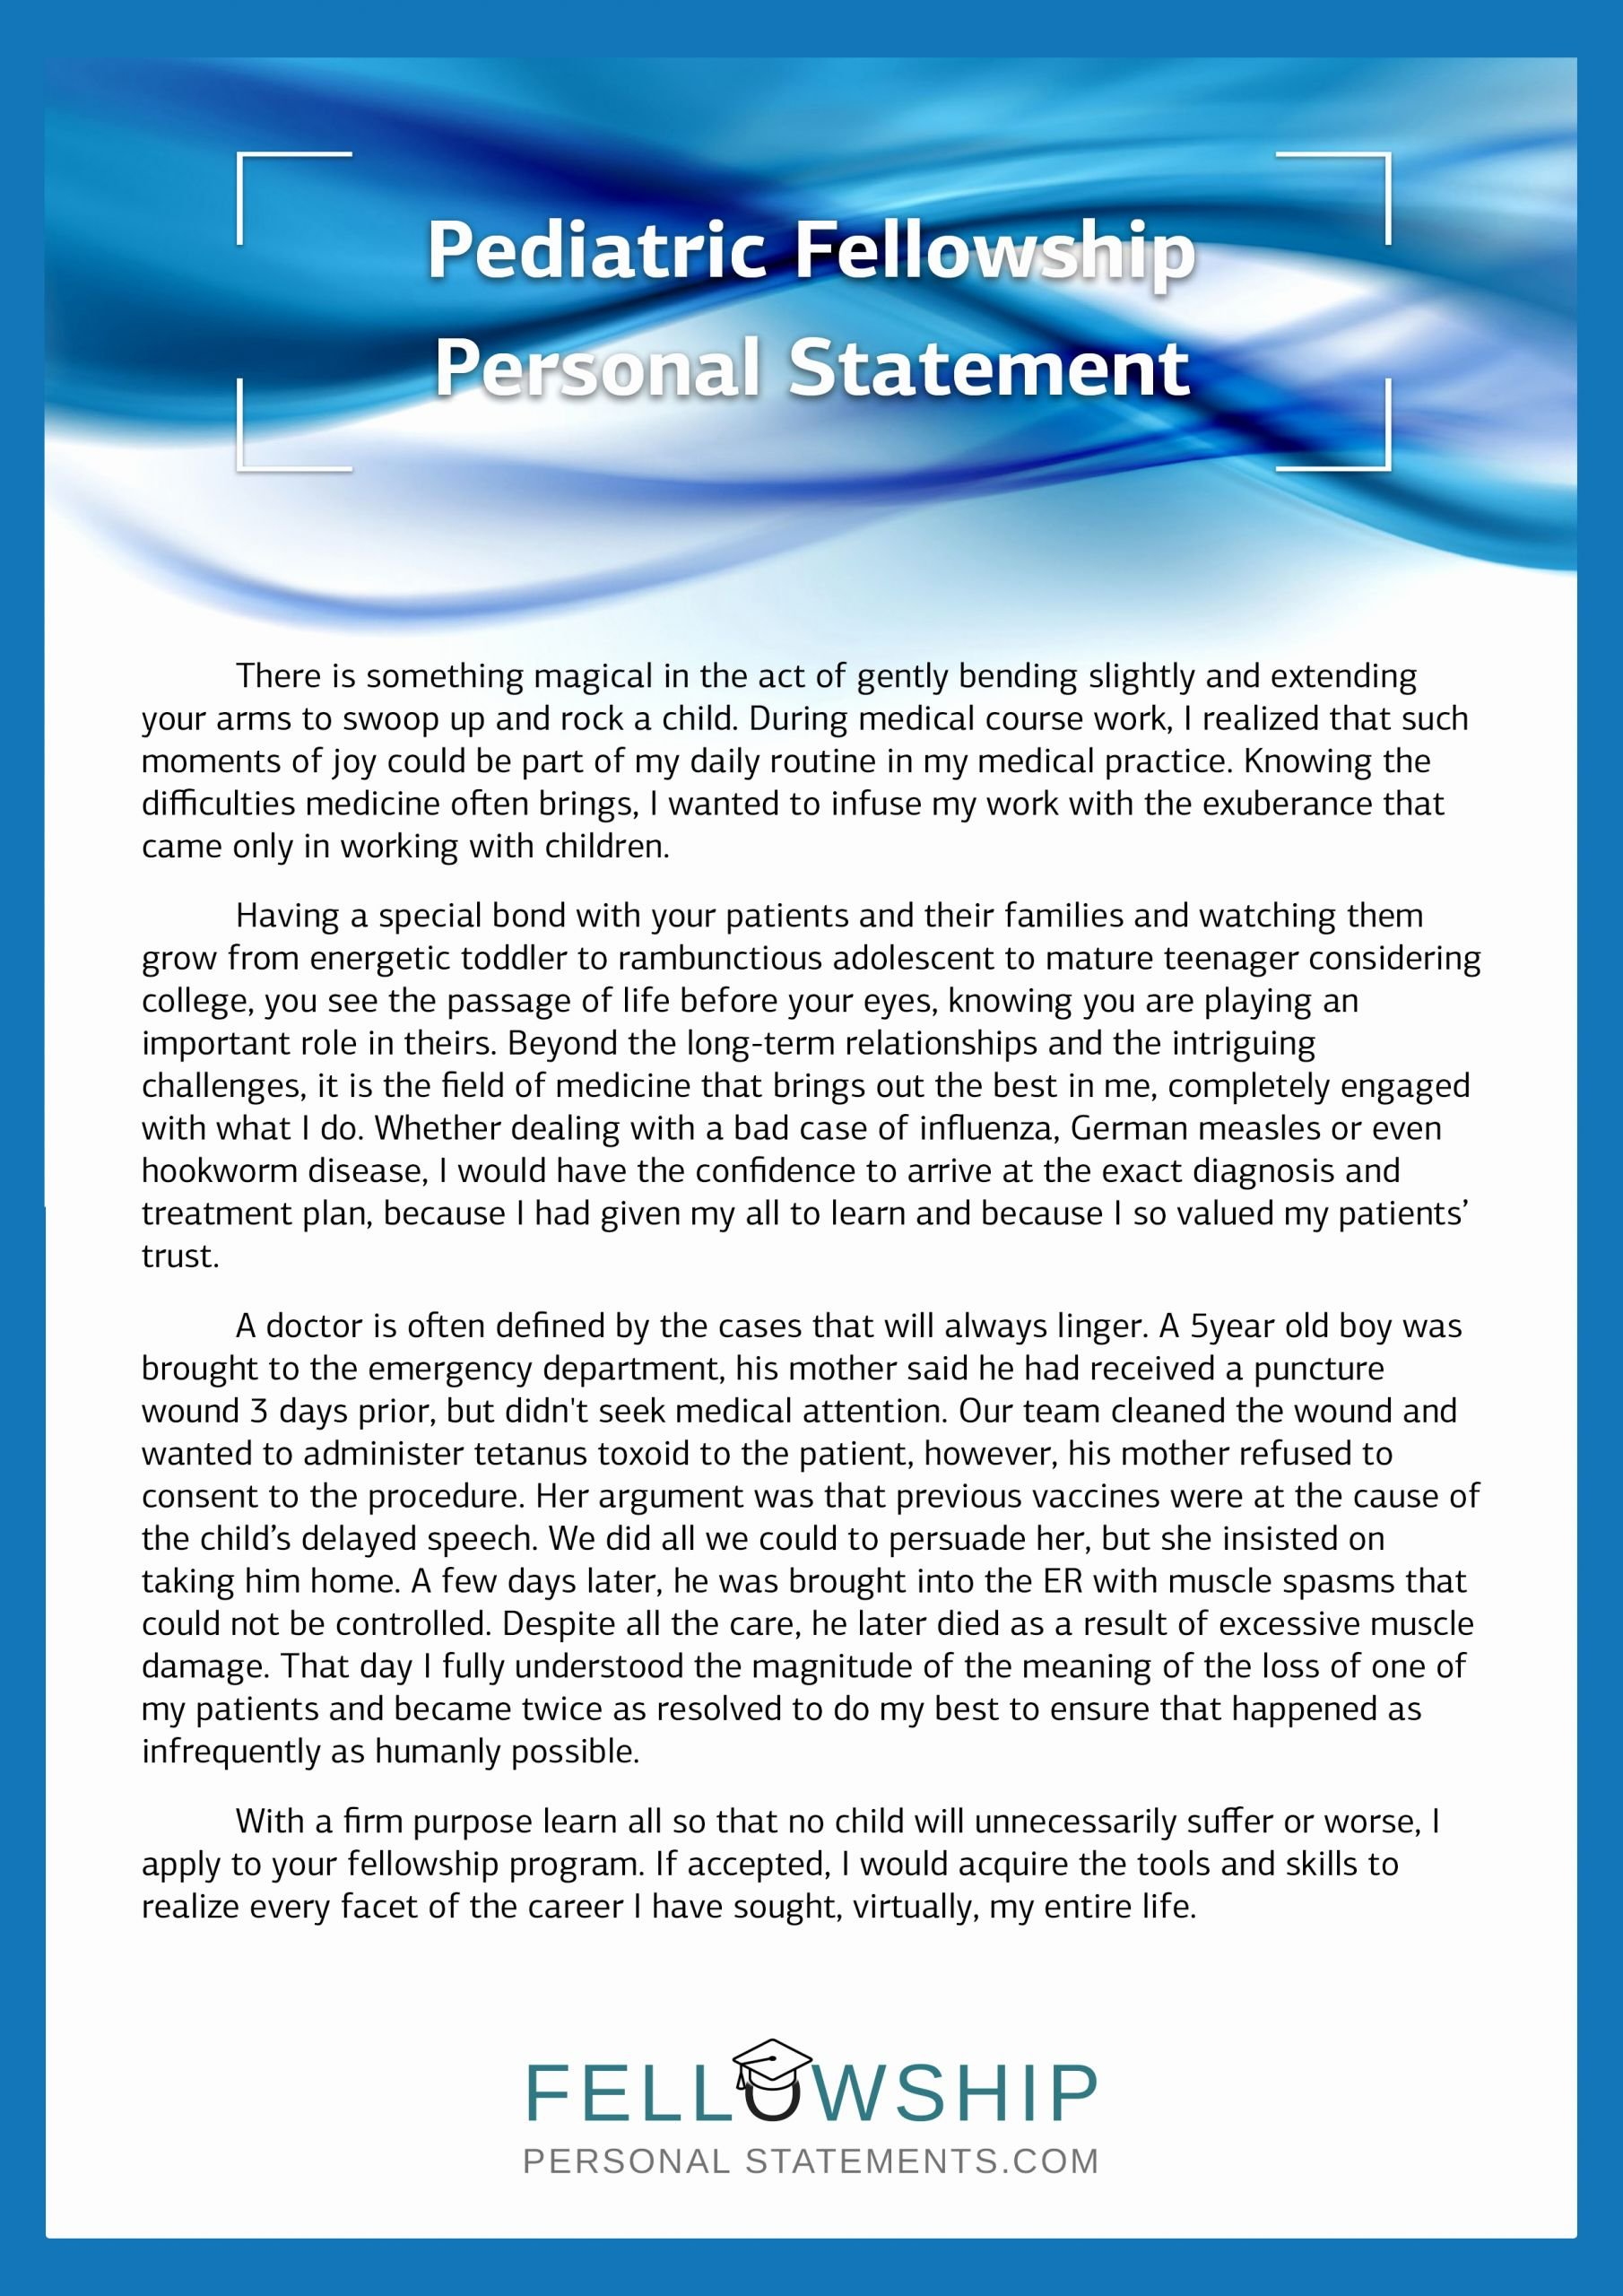 Personal Statement for Fellowship Sample Unique Best Fellowship Personal Statement Sample